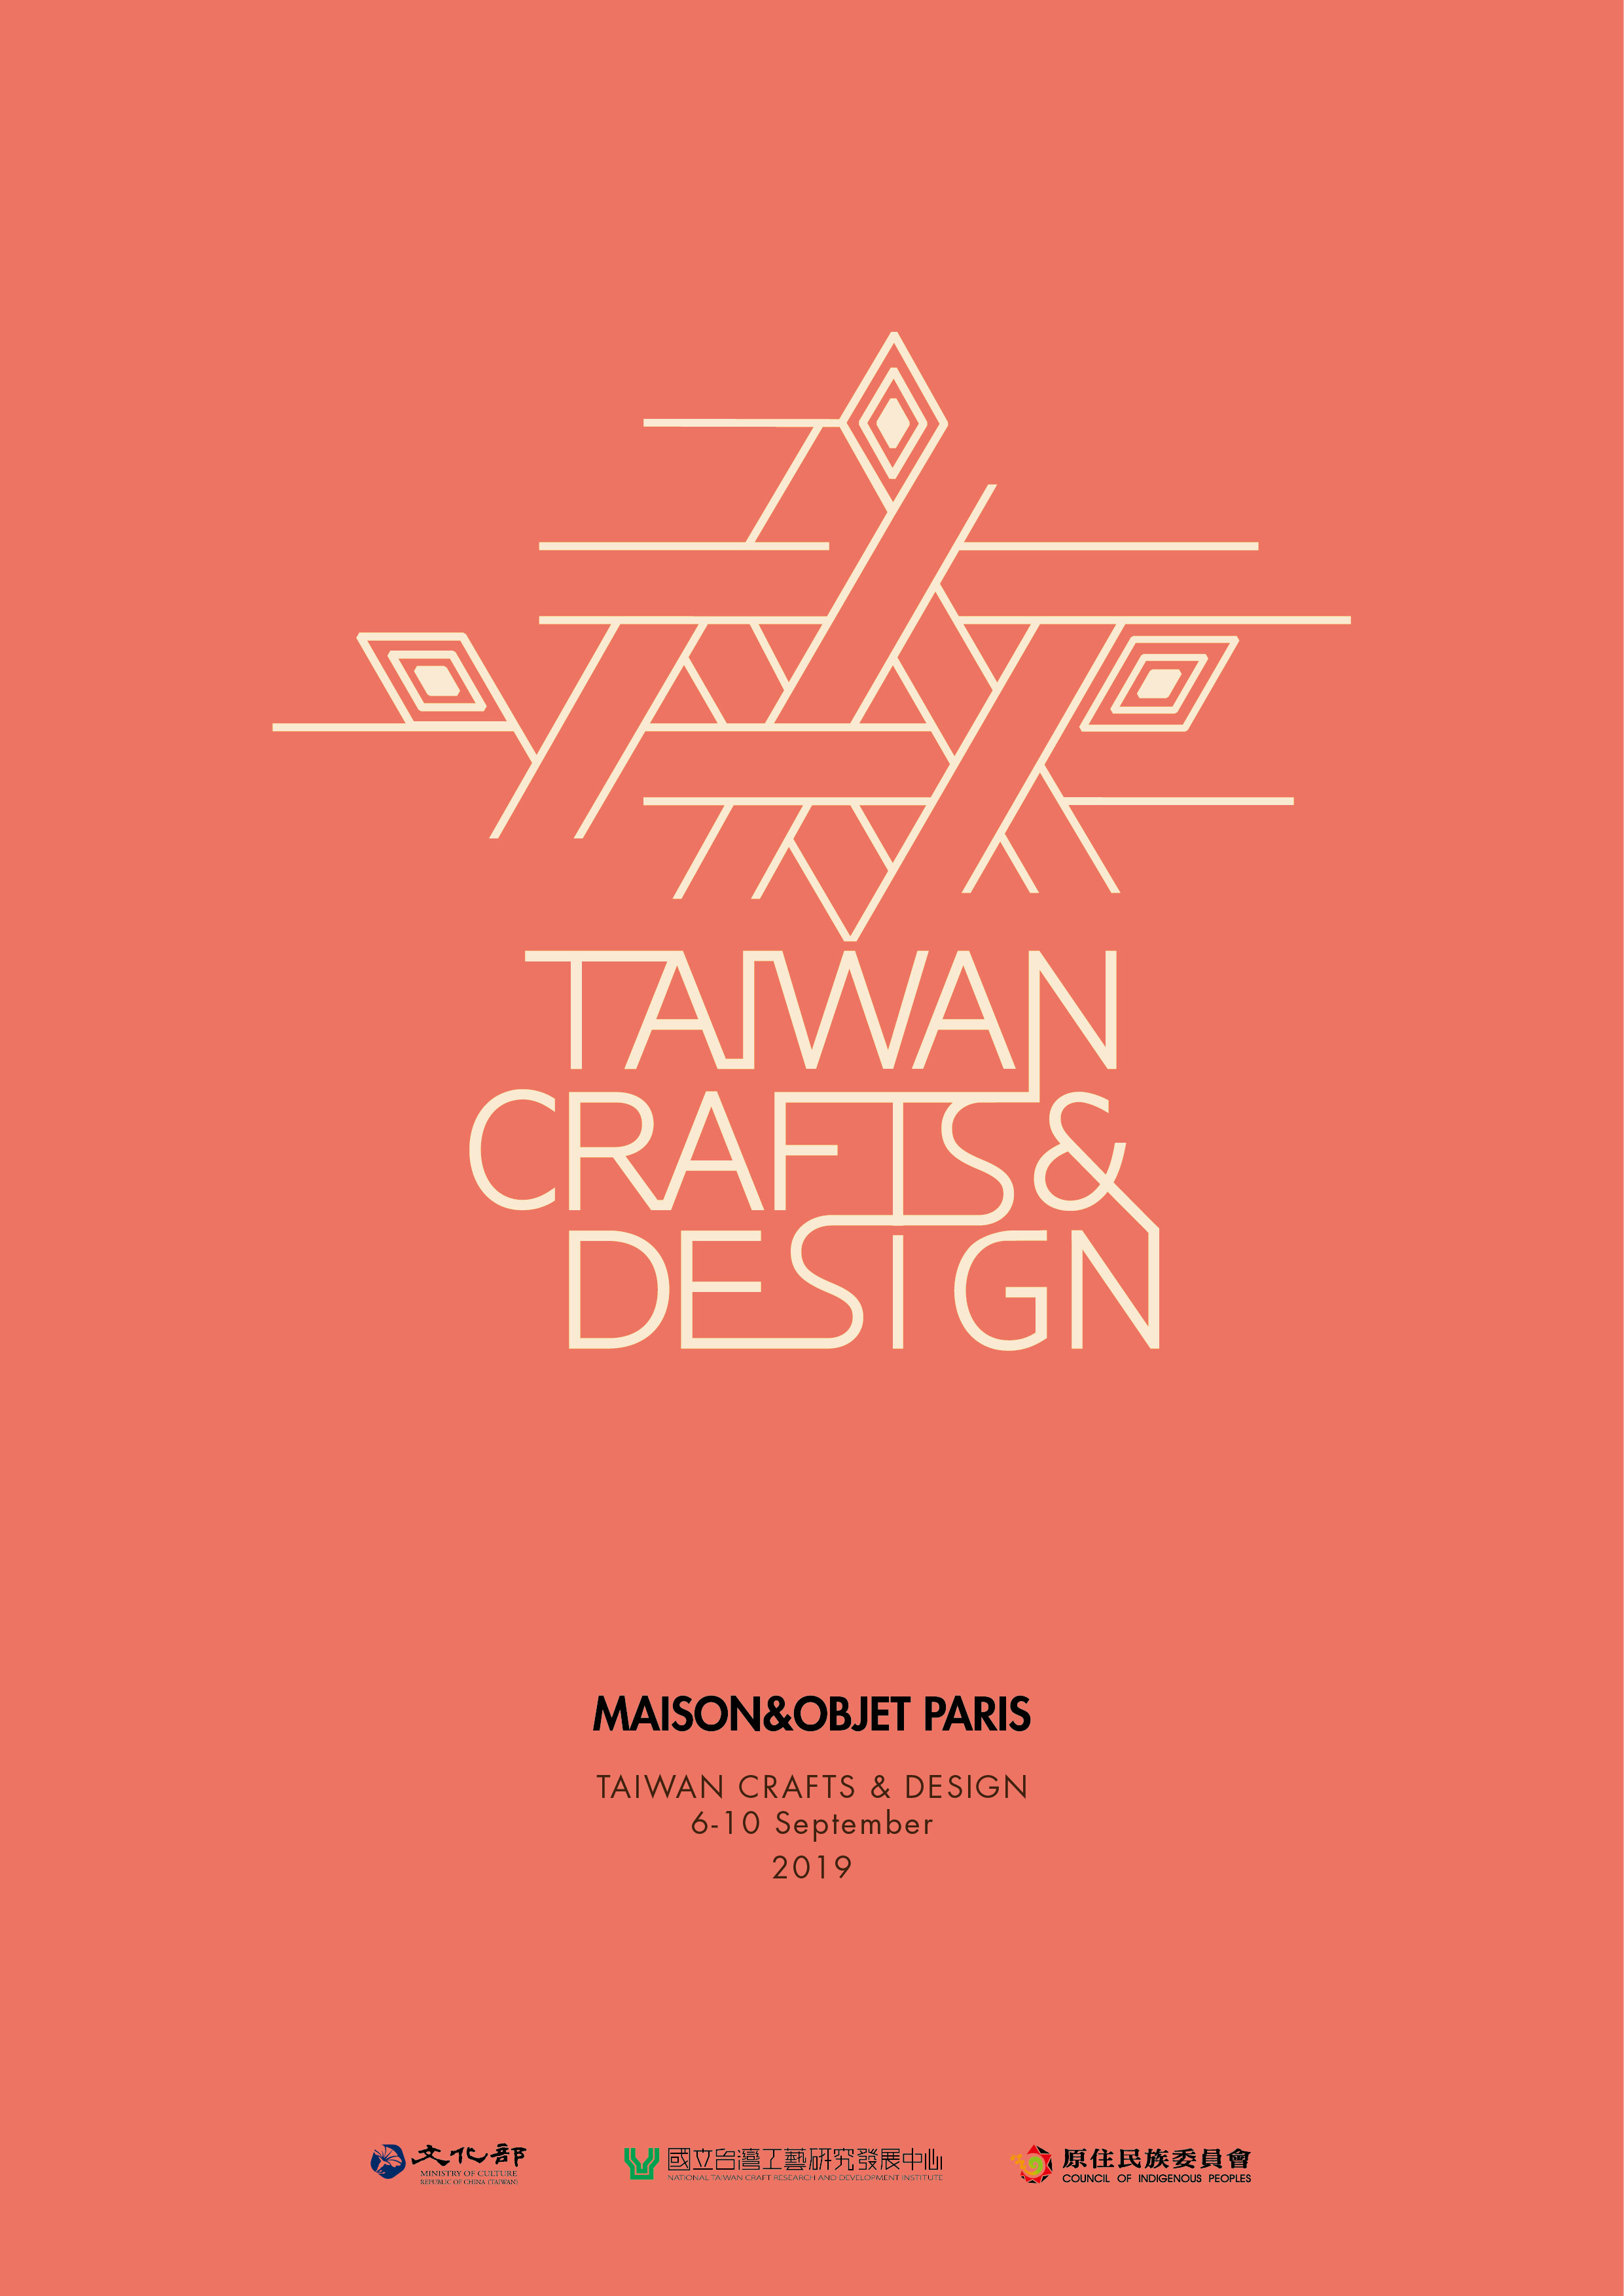 Taiwanese indigenous crafts head for Maison & Objet Paris